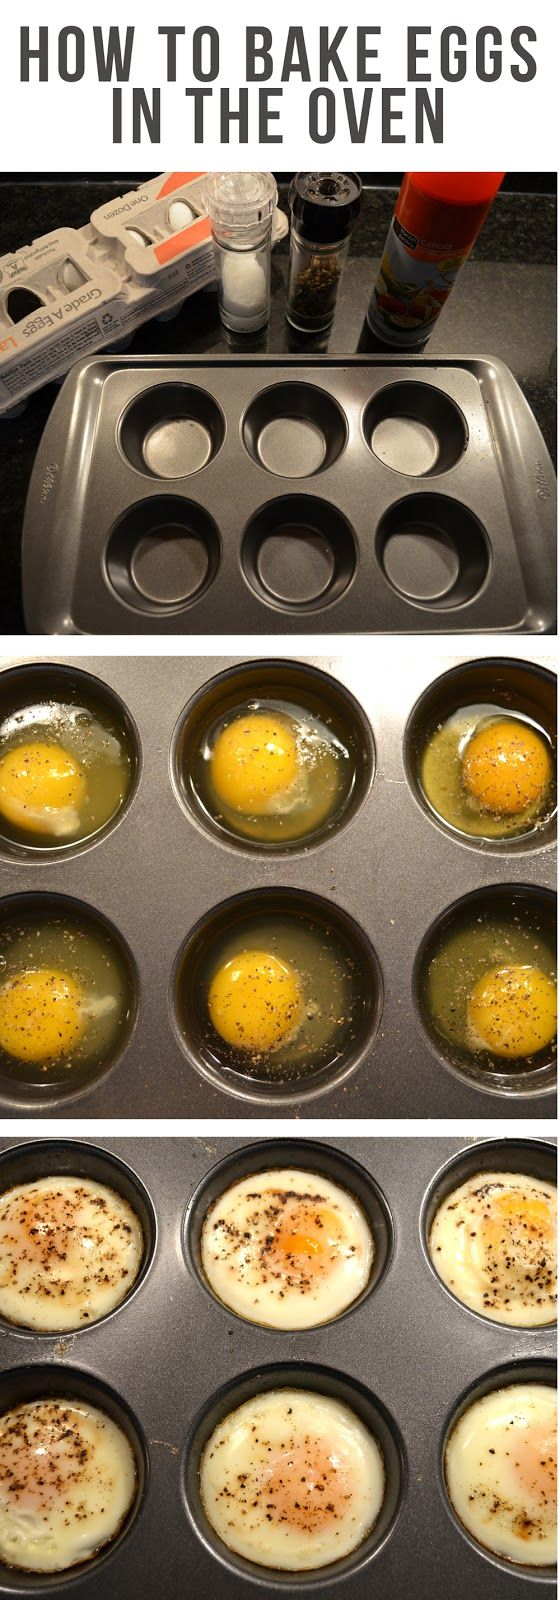 Set Your Oven To 350f (180�c), Grease A Muffin Tin With